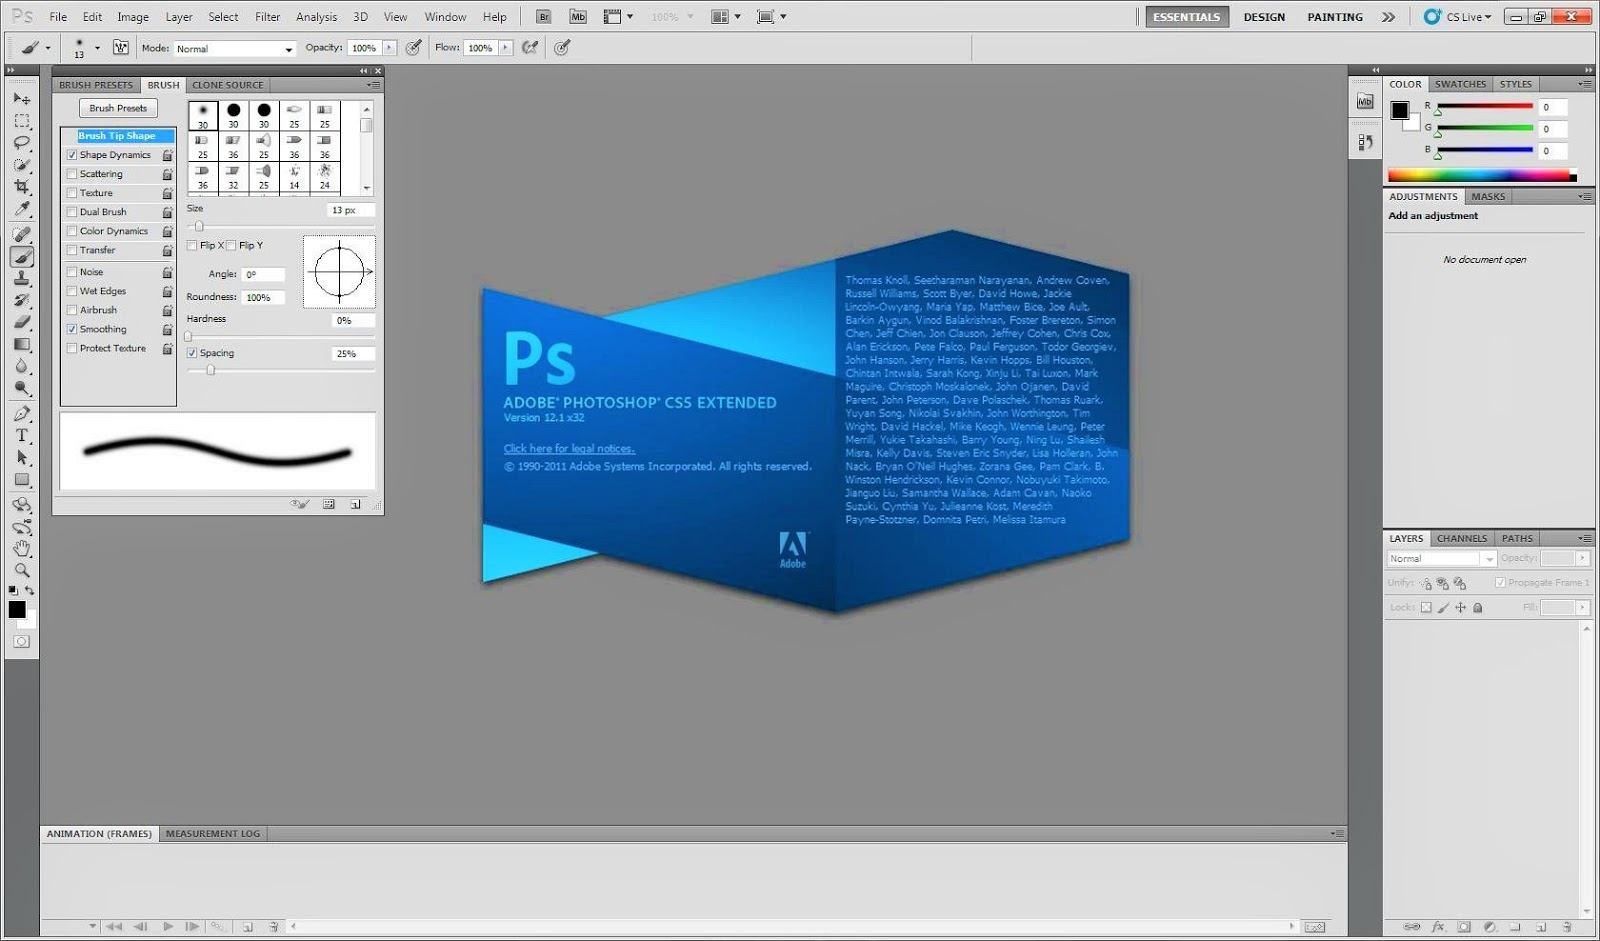 Adobe Photoshop CS5 Extended Full Version Terbaru 2020 Working